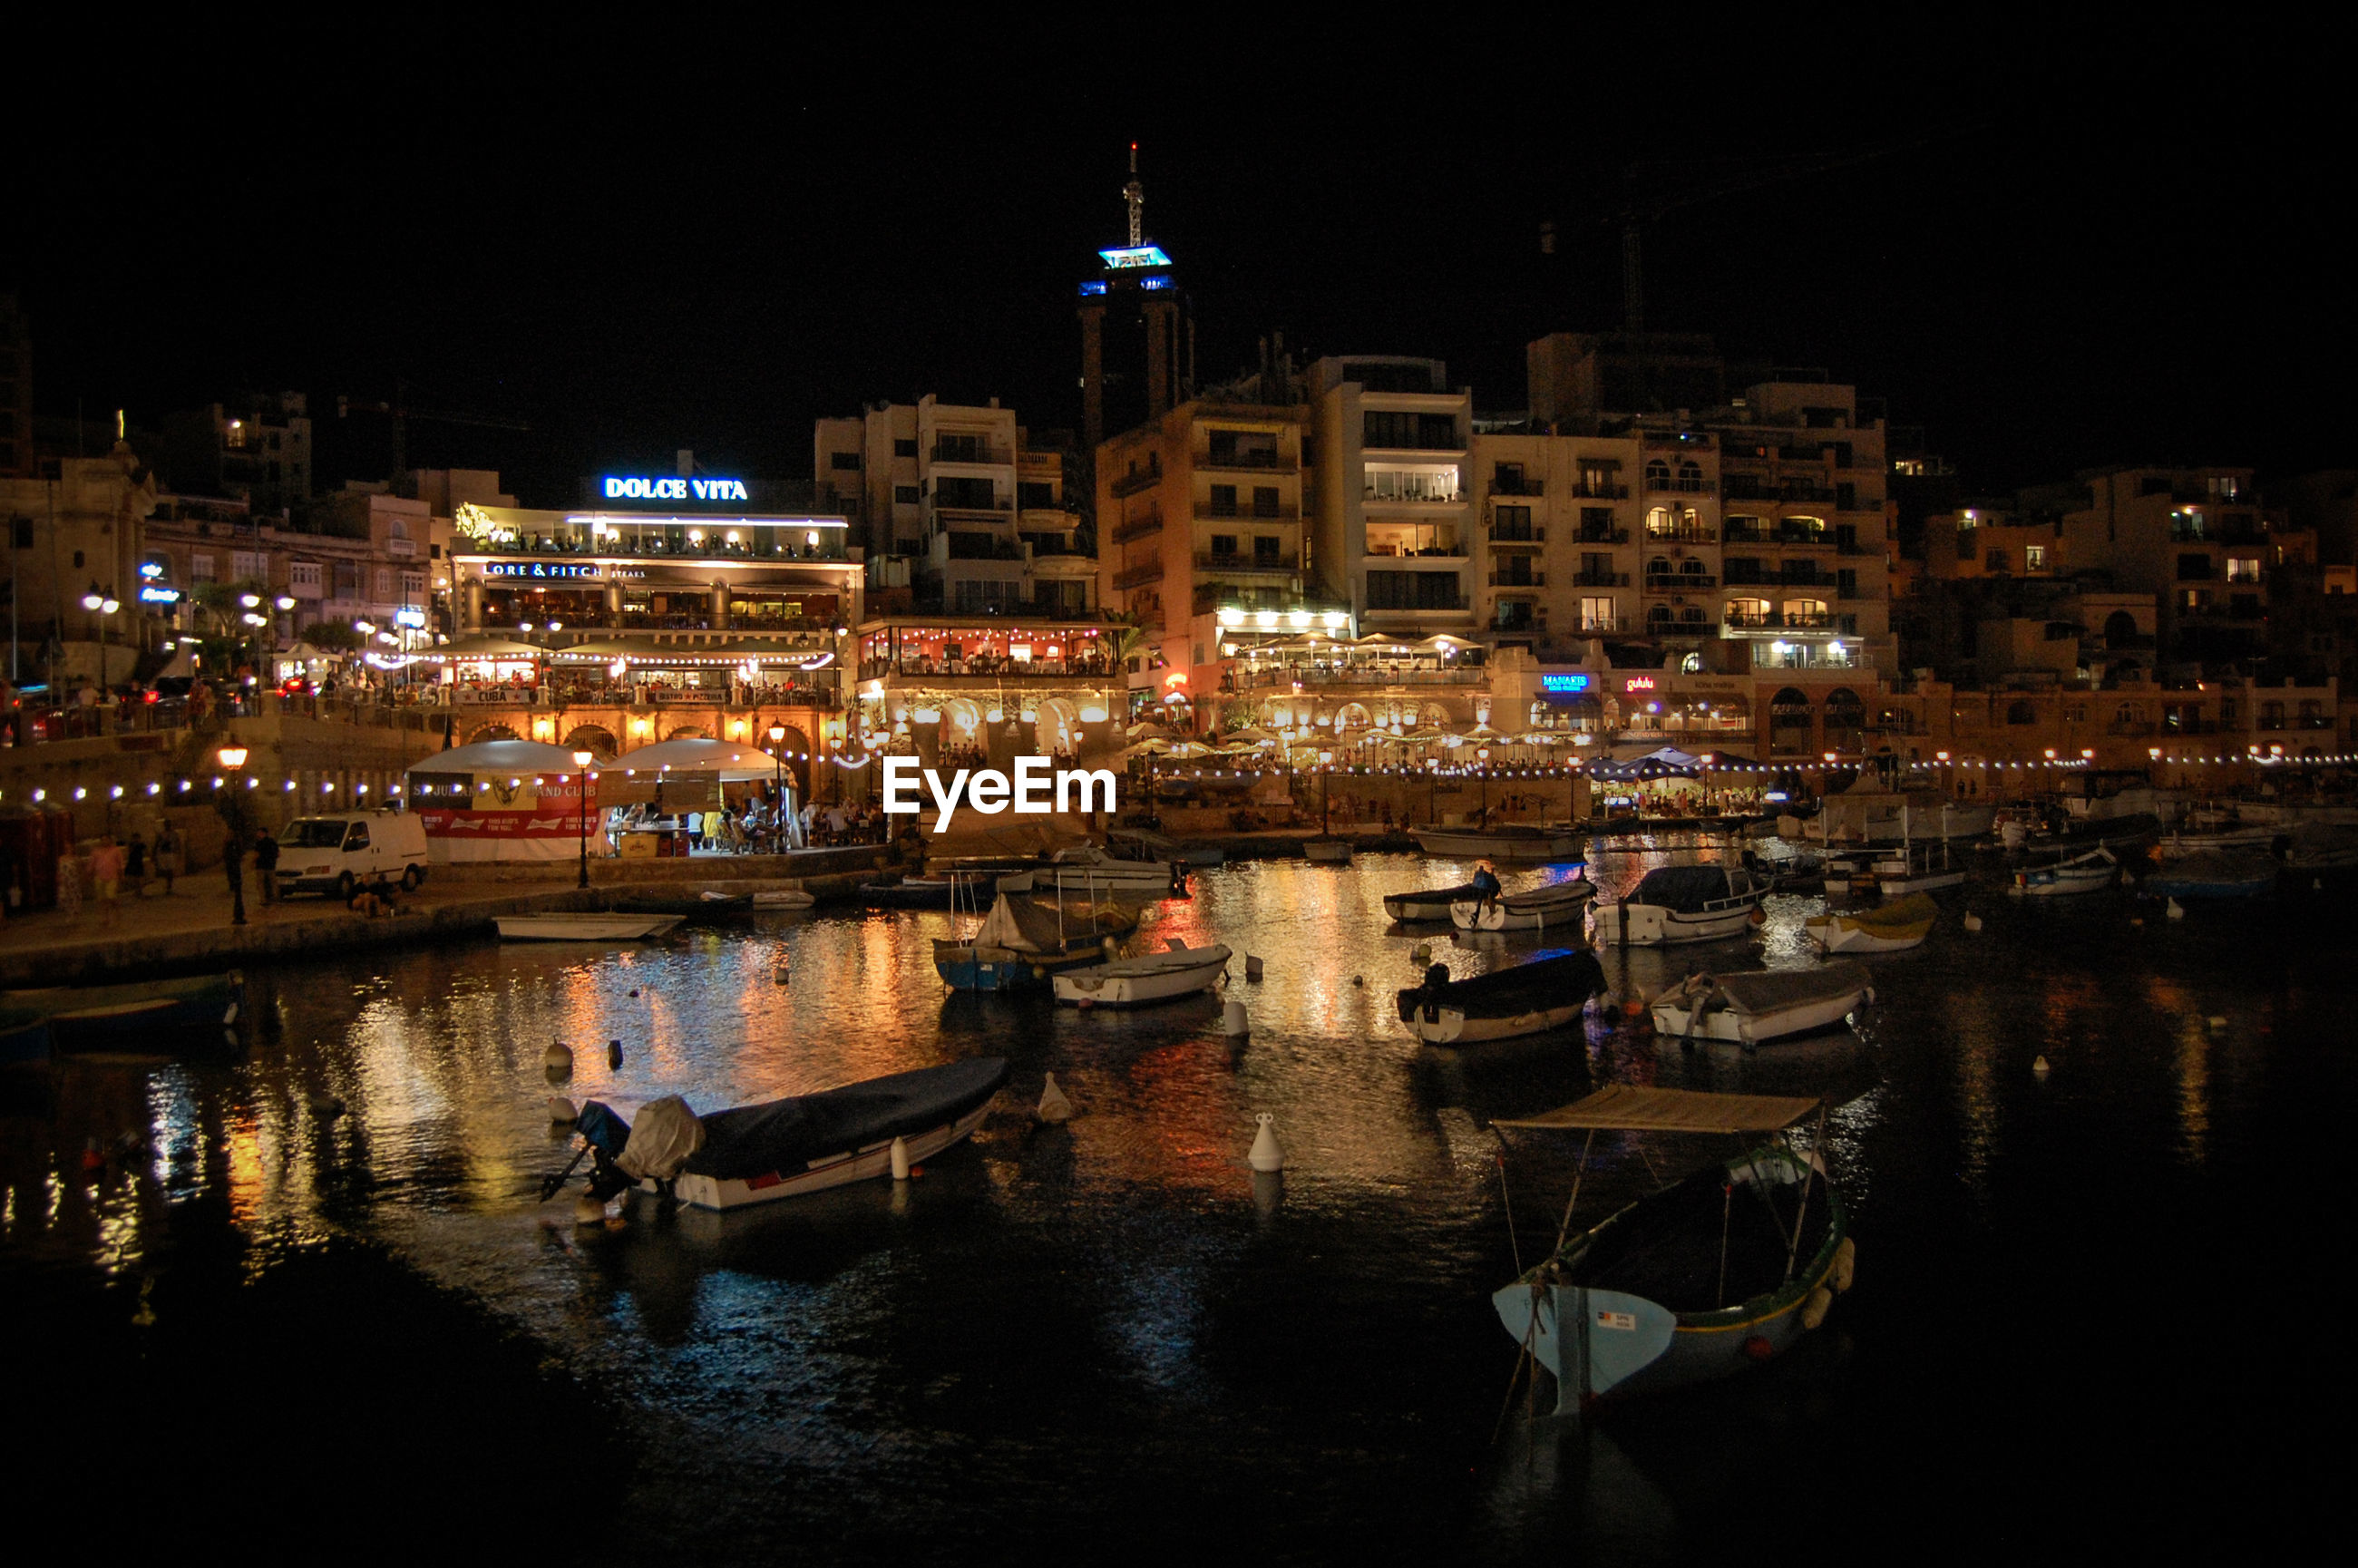 BOATS MOORED AT HARBOR AGAINST BUILDINGS AT NIGHT